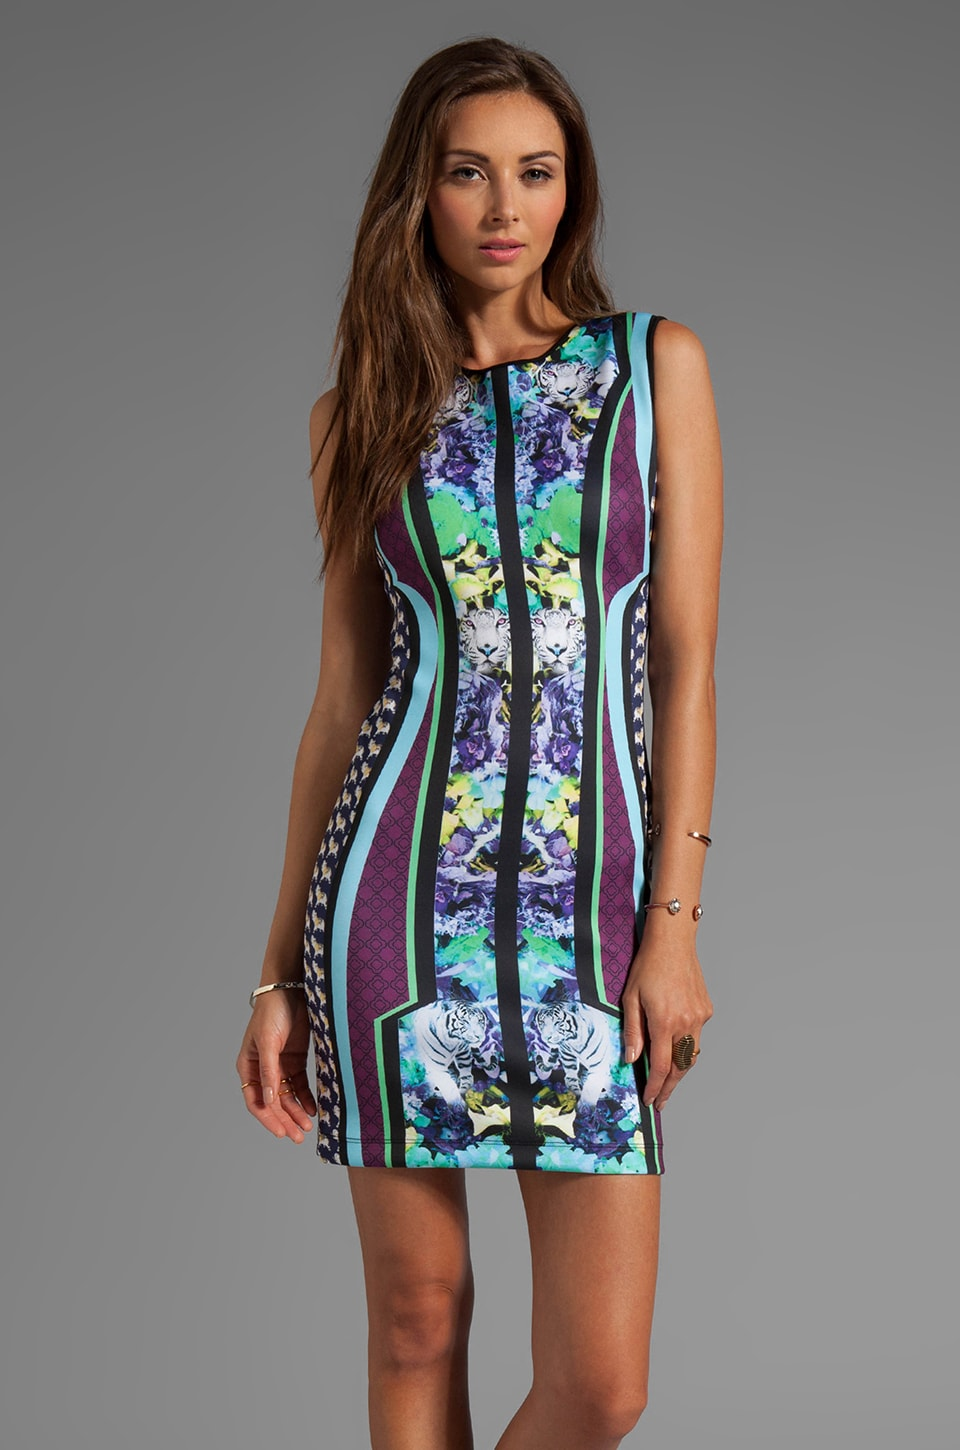 Clover Canyon Graphic Flowers Neoprene Dress in Multi